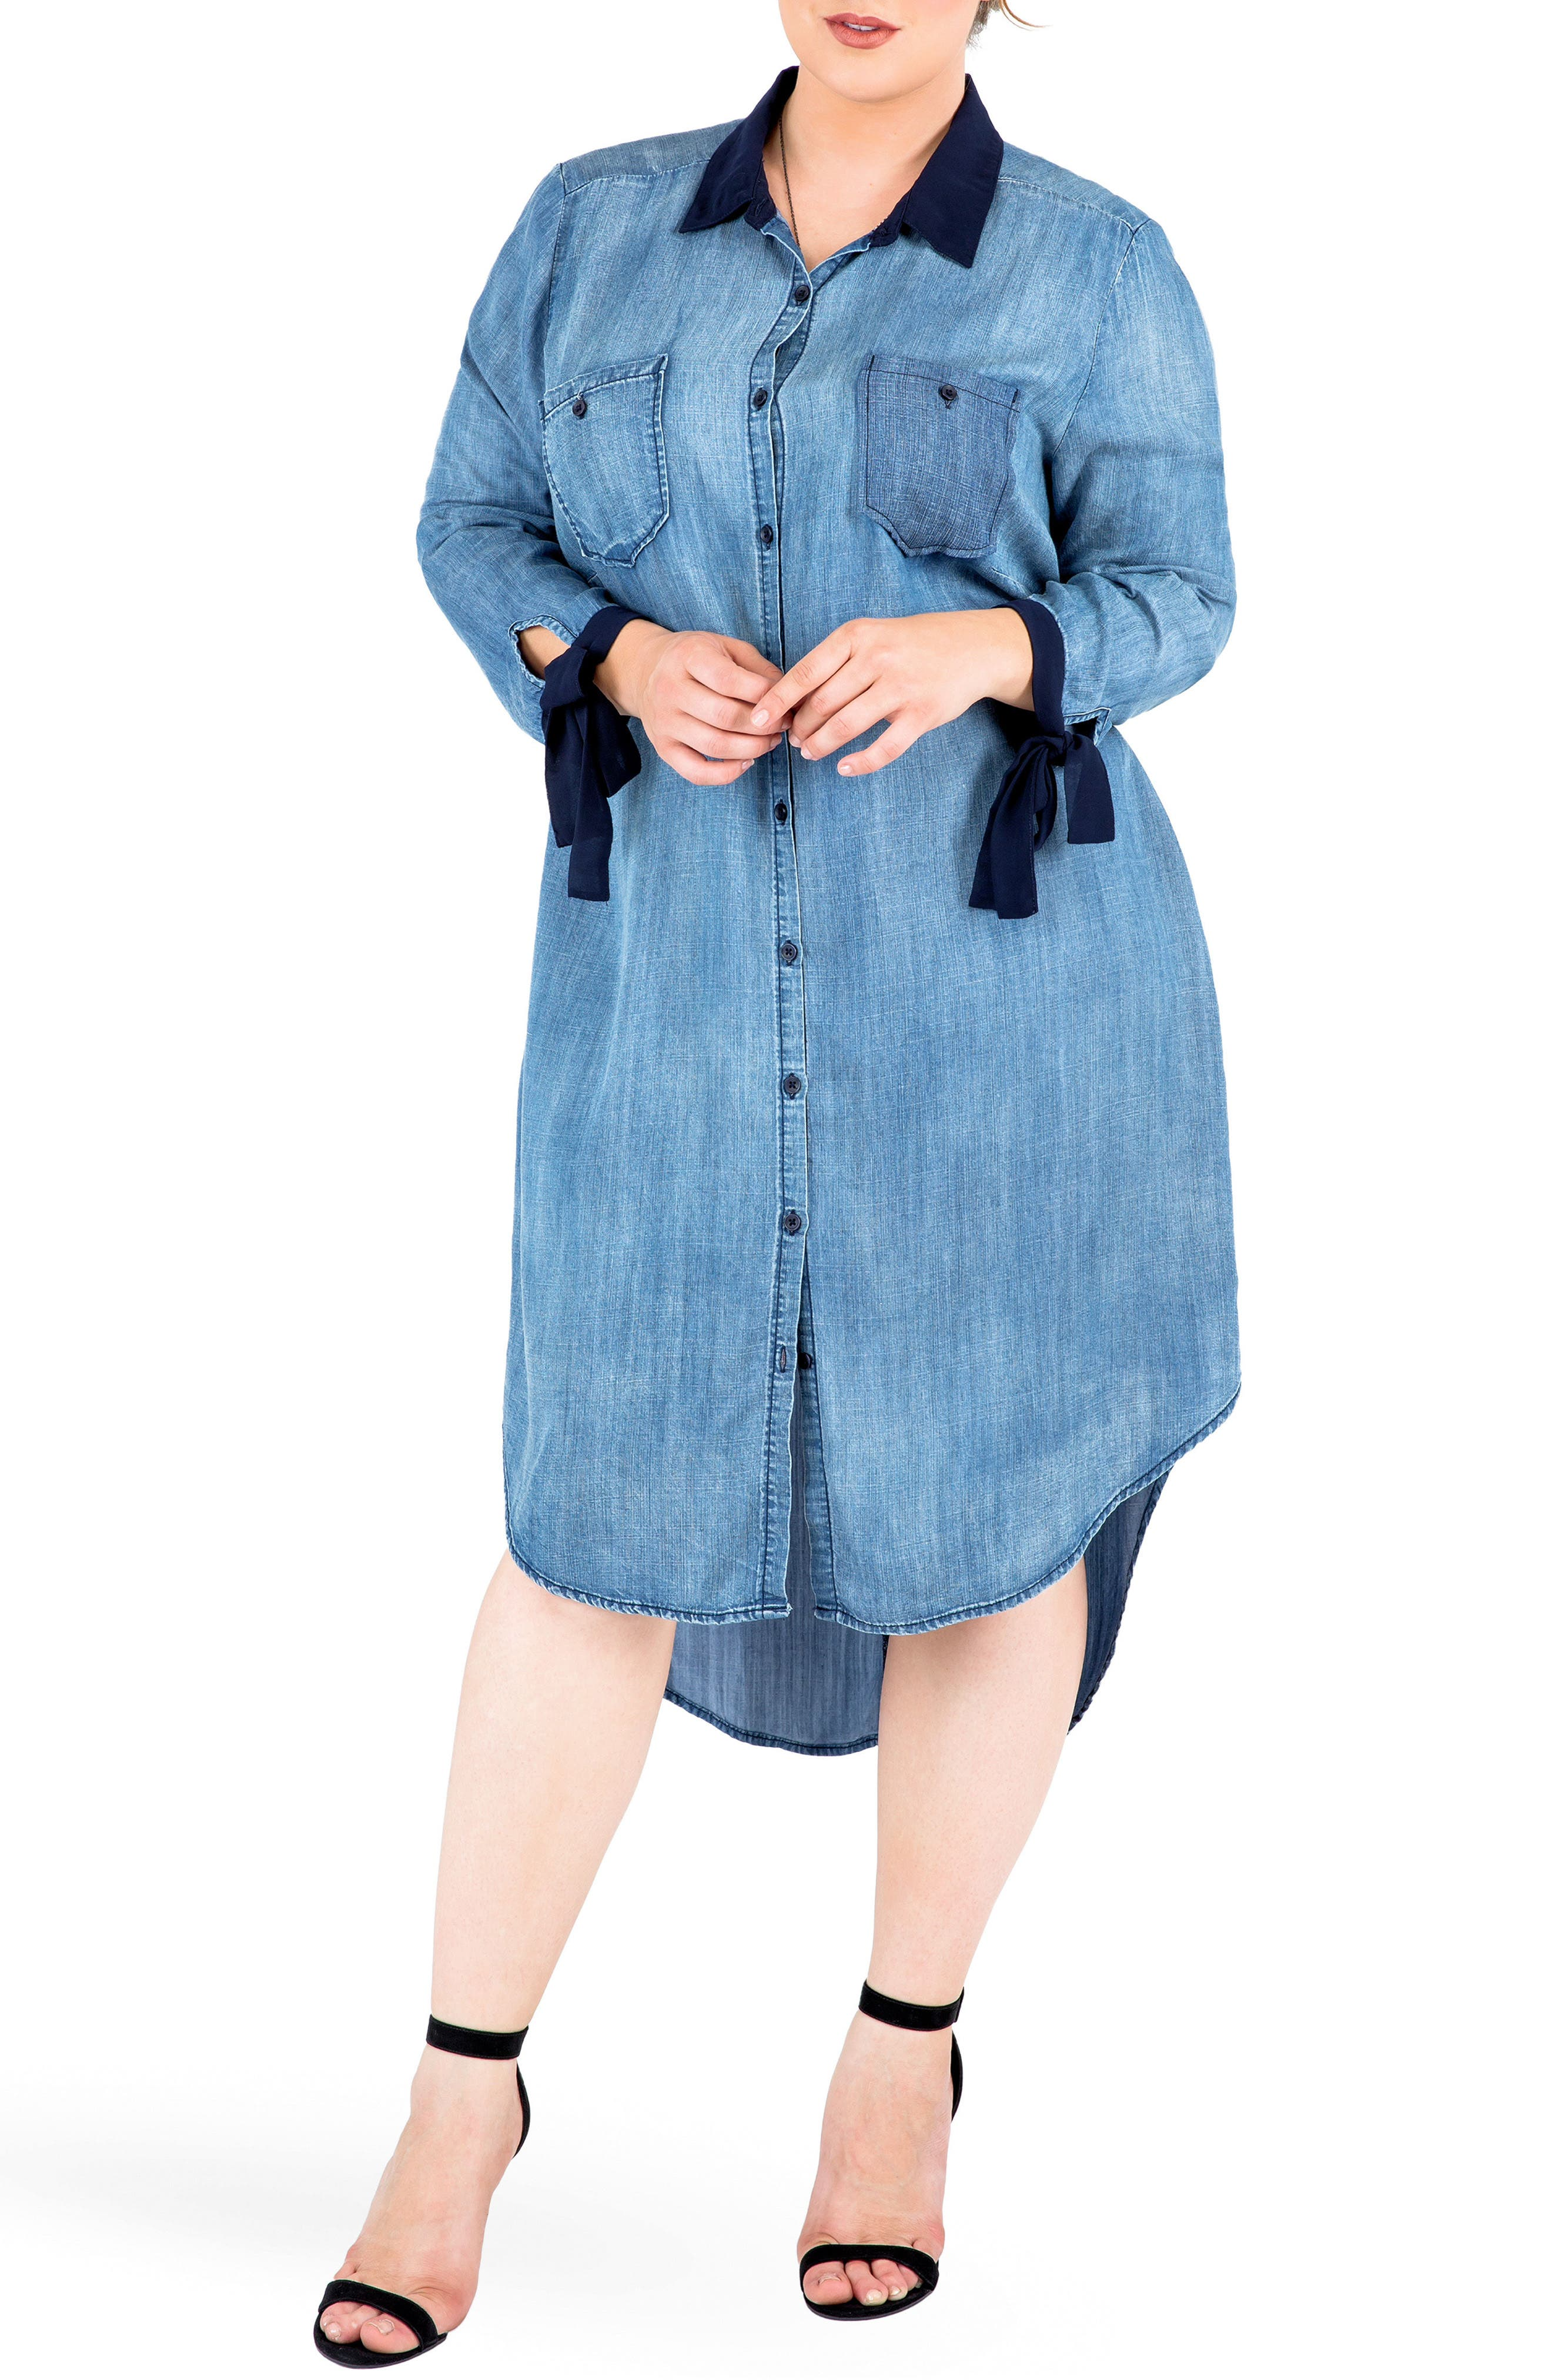 Alternate Image 1 Selected - Standards & Practices High/Low Denim Shirtdress (Plus Size)